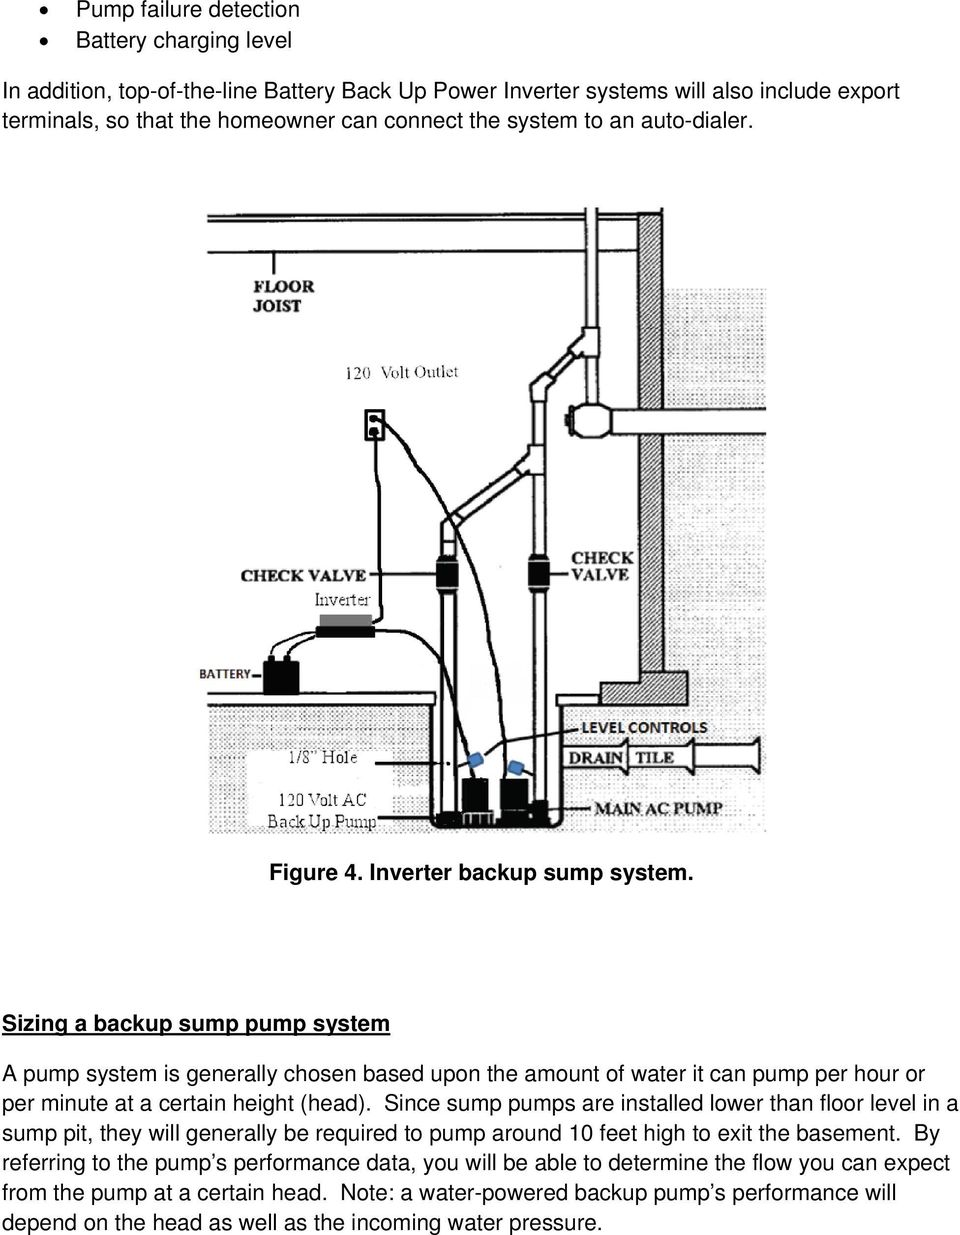 Sizing a backup sump pump system A pump system is generally chosen based upon the amount of water it can pump per hour or per minute at a certain height (head).